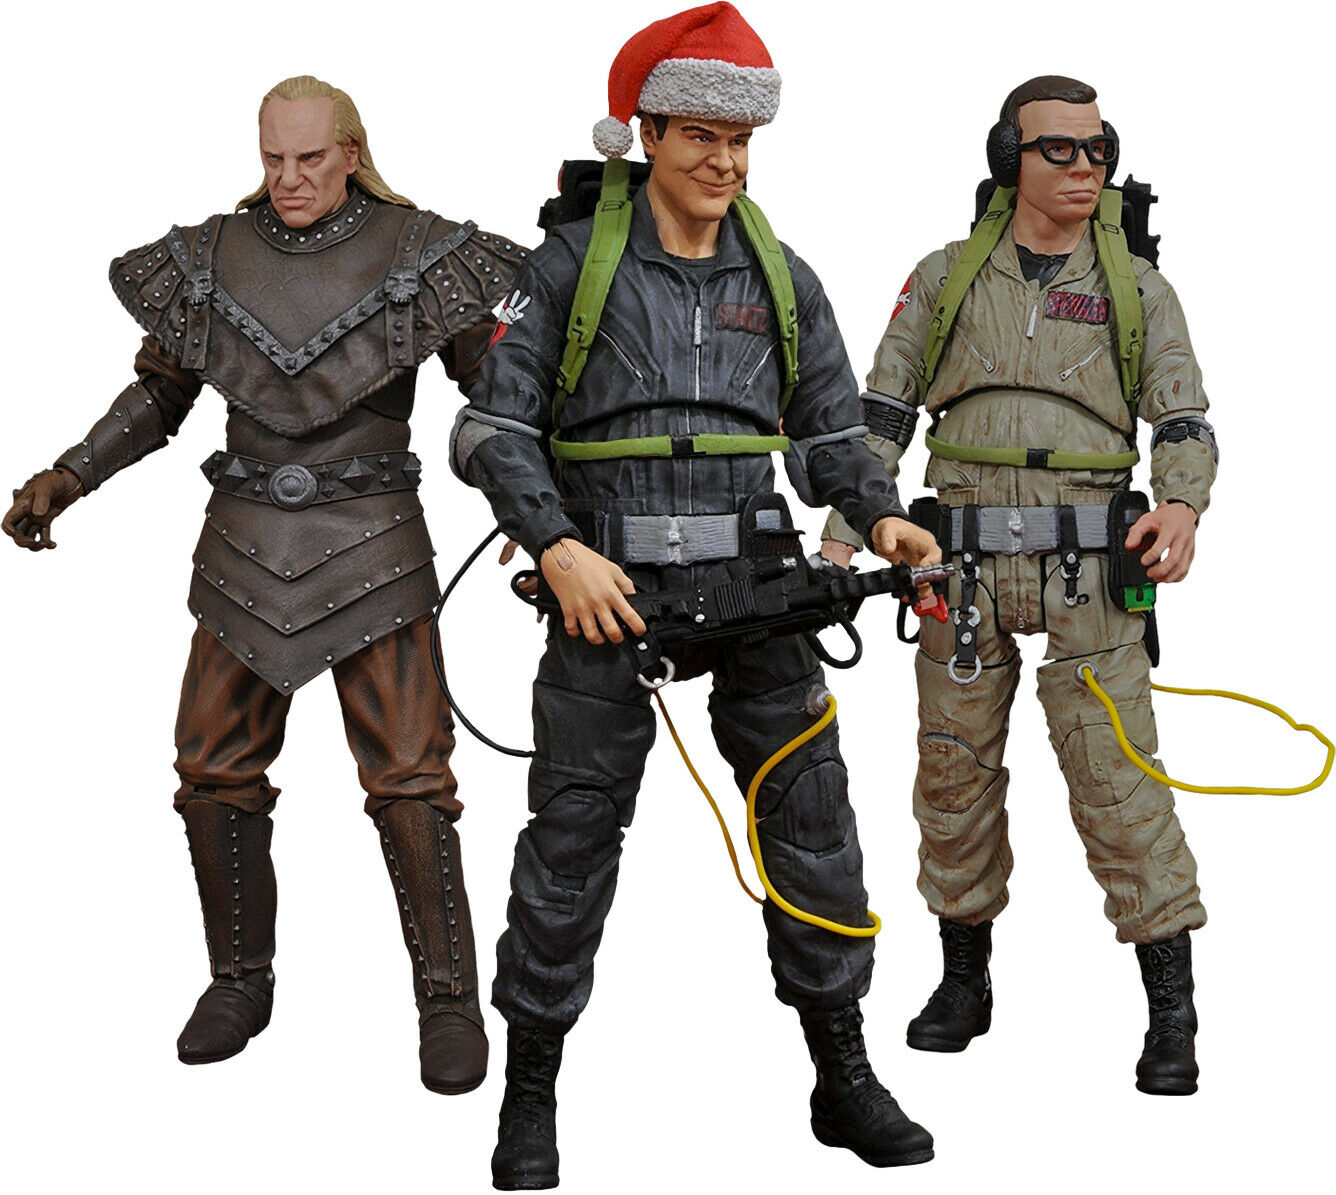 GHOSTBUSTERS II - 7  Series 6 Action Figure Set (3) Diamond Select Toys  NEW